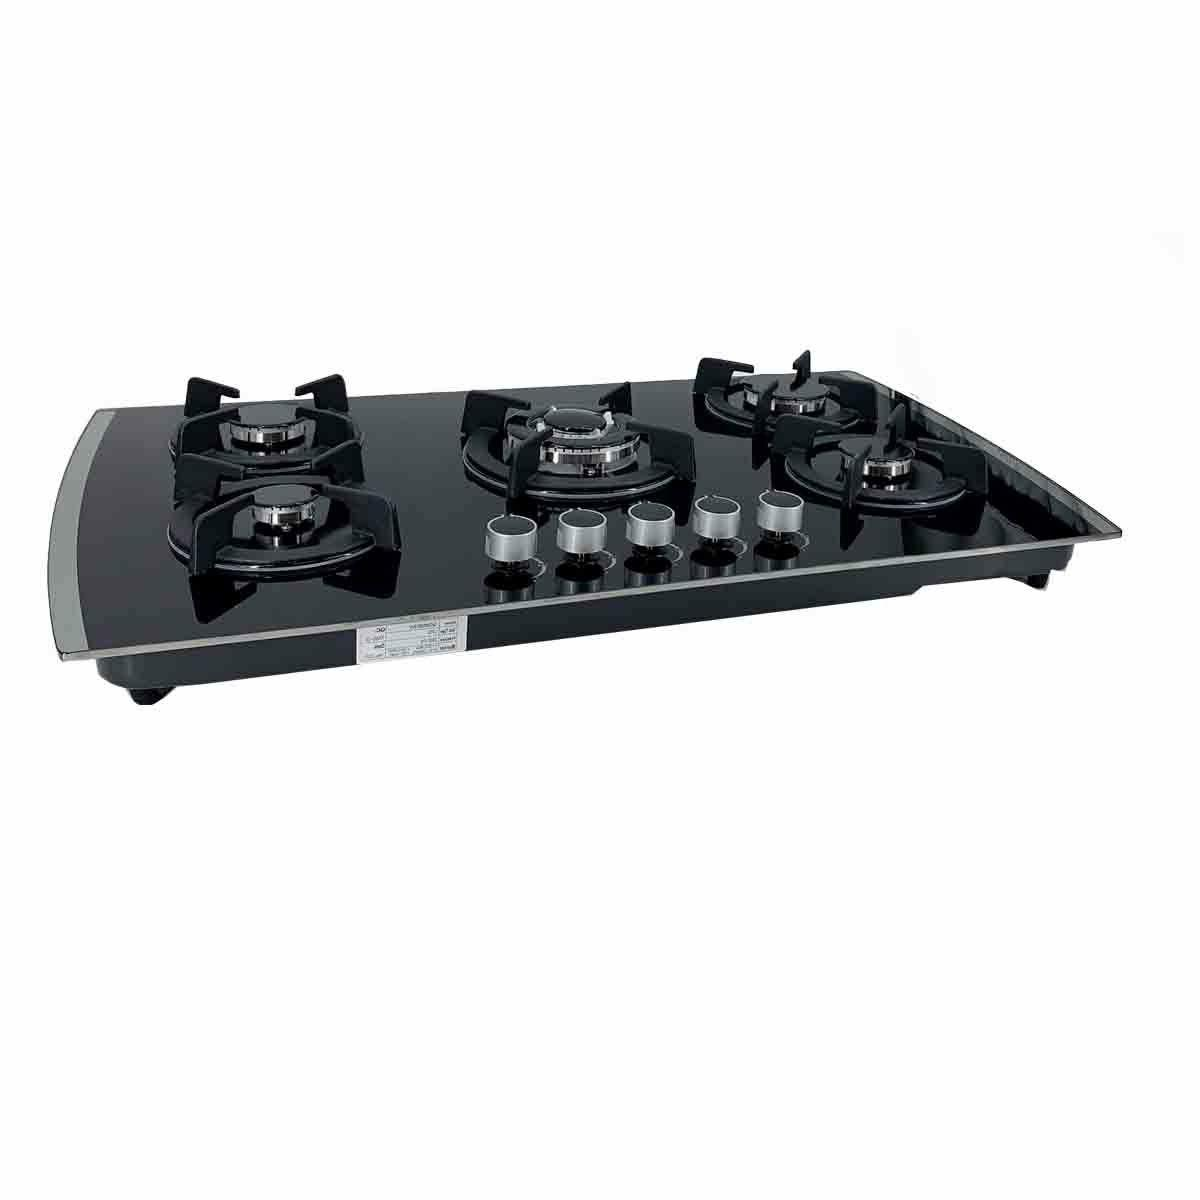 5 Burners Built-In Cooktop NG/LPG Tempered Countertop Gas 30Inch